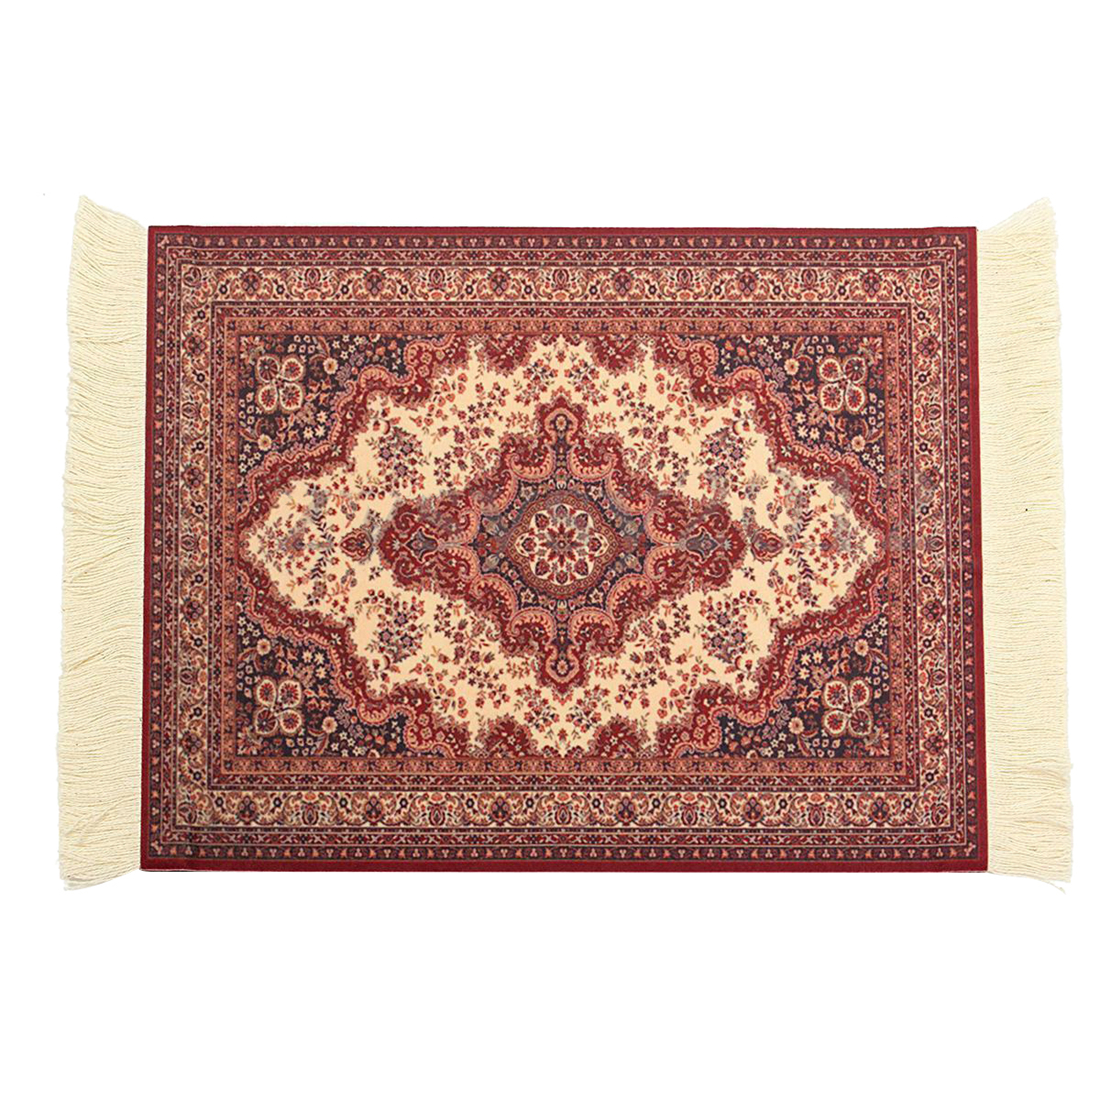 OPQ-28x18cm Persian Rug Mat Mousepad Retro Style Carpet Pattern Mouse Pad Red